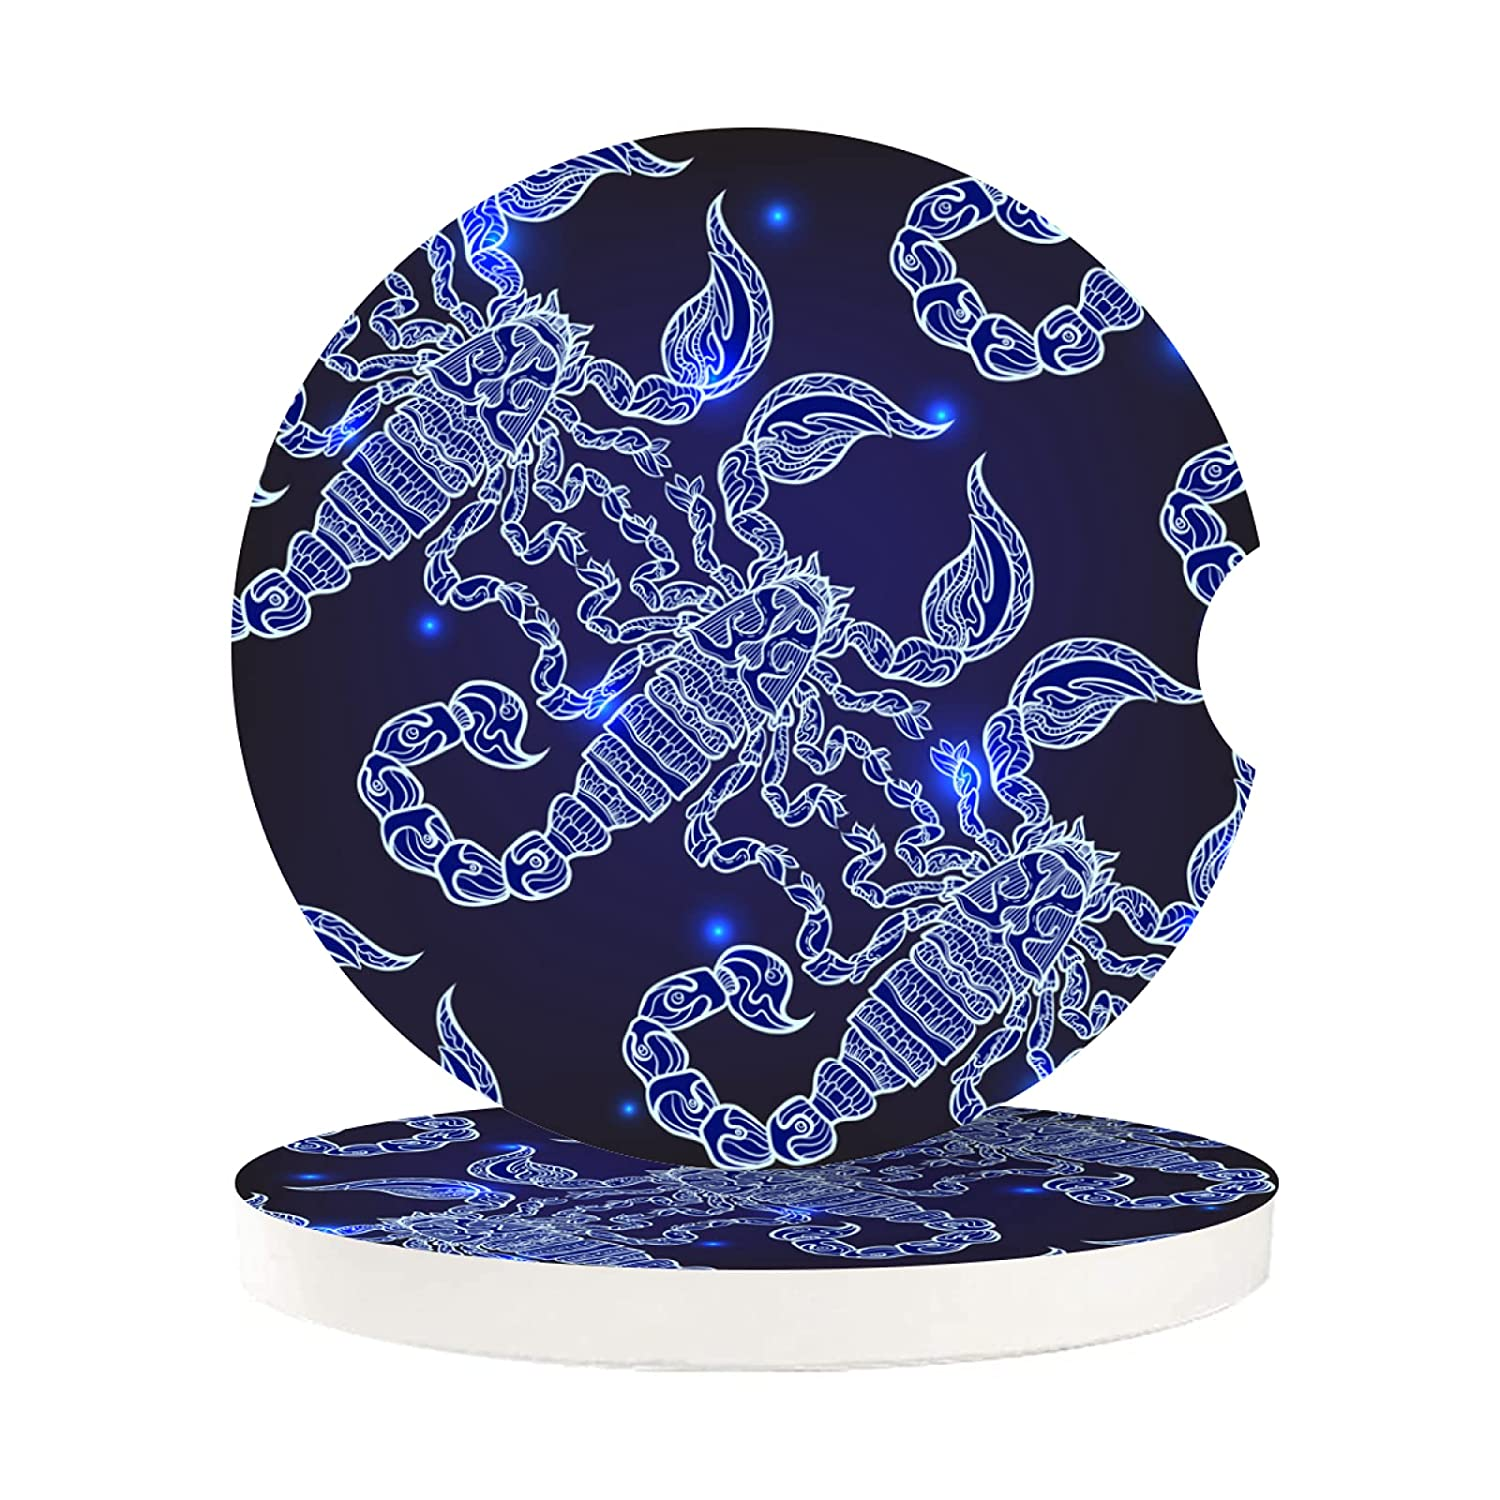 Car Coasters 2 Pack For Women Men Bright Navy Blue Scorpius Scorpion Scorpio Constellations Car Drink Absorbent Cup Holder Insert Cork Cupholder Coaster Set For Your Car Wood Auto Cup Beverage Coaster